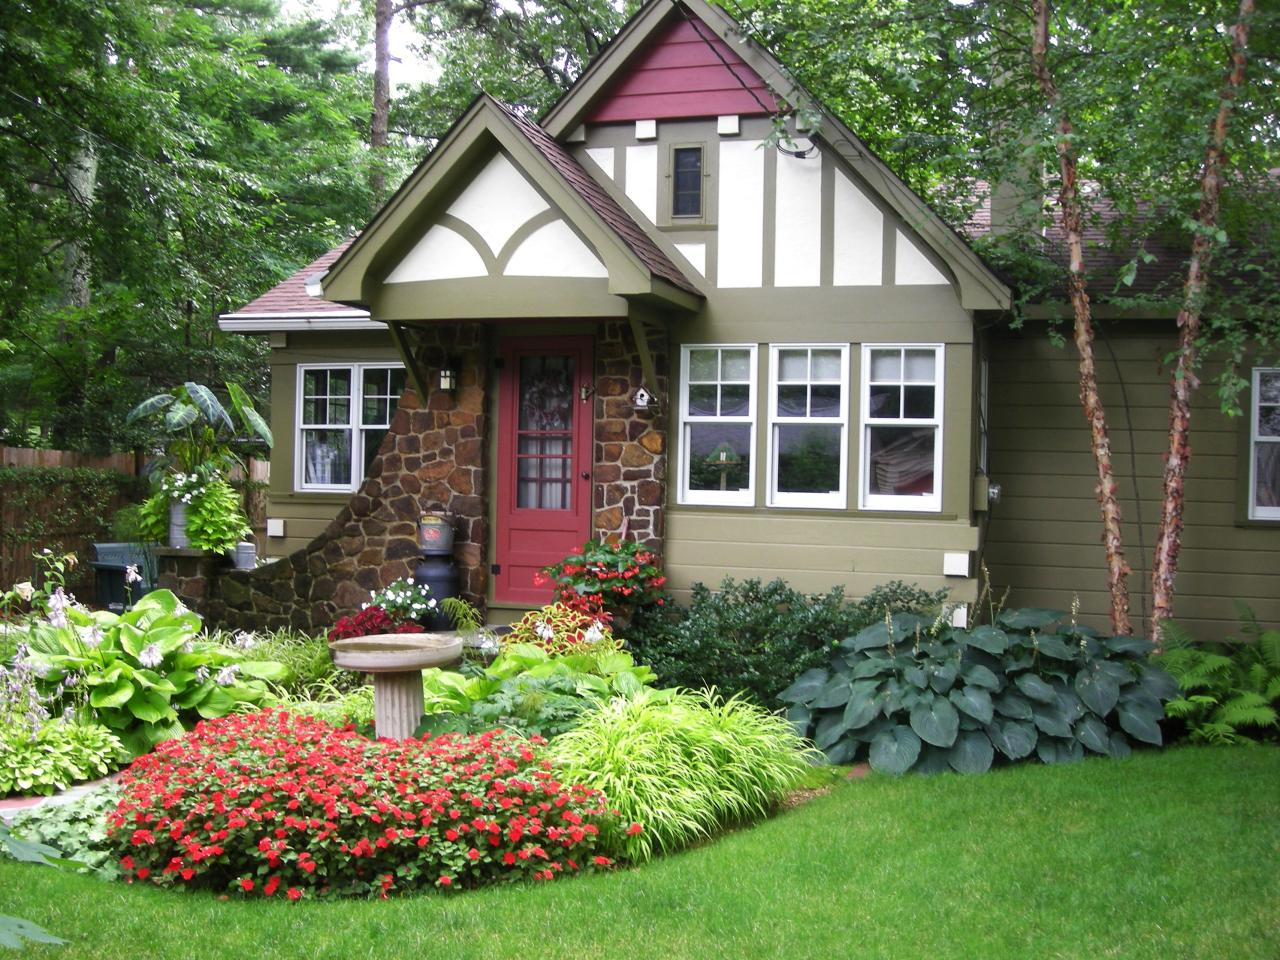 Photos hgtv for Landscaping ideas for front of home